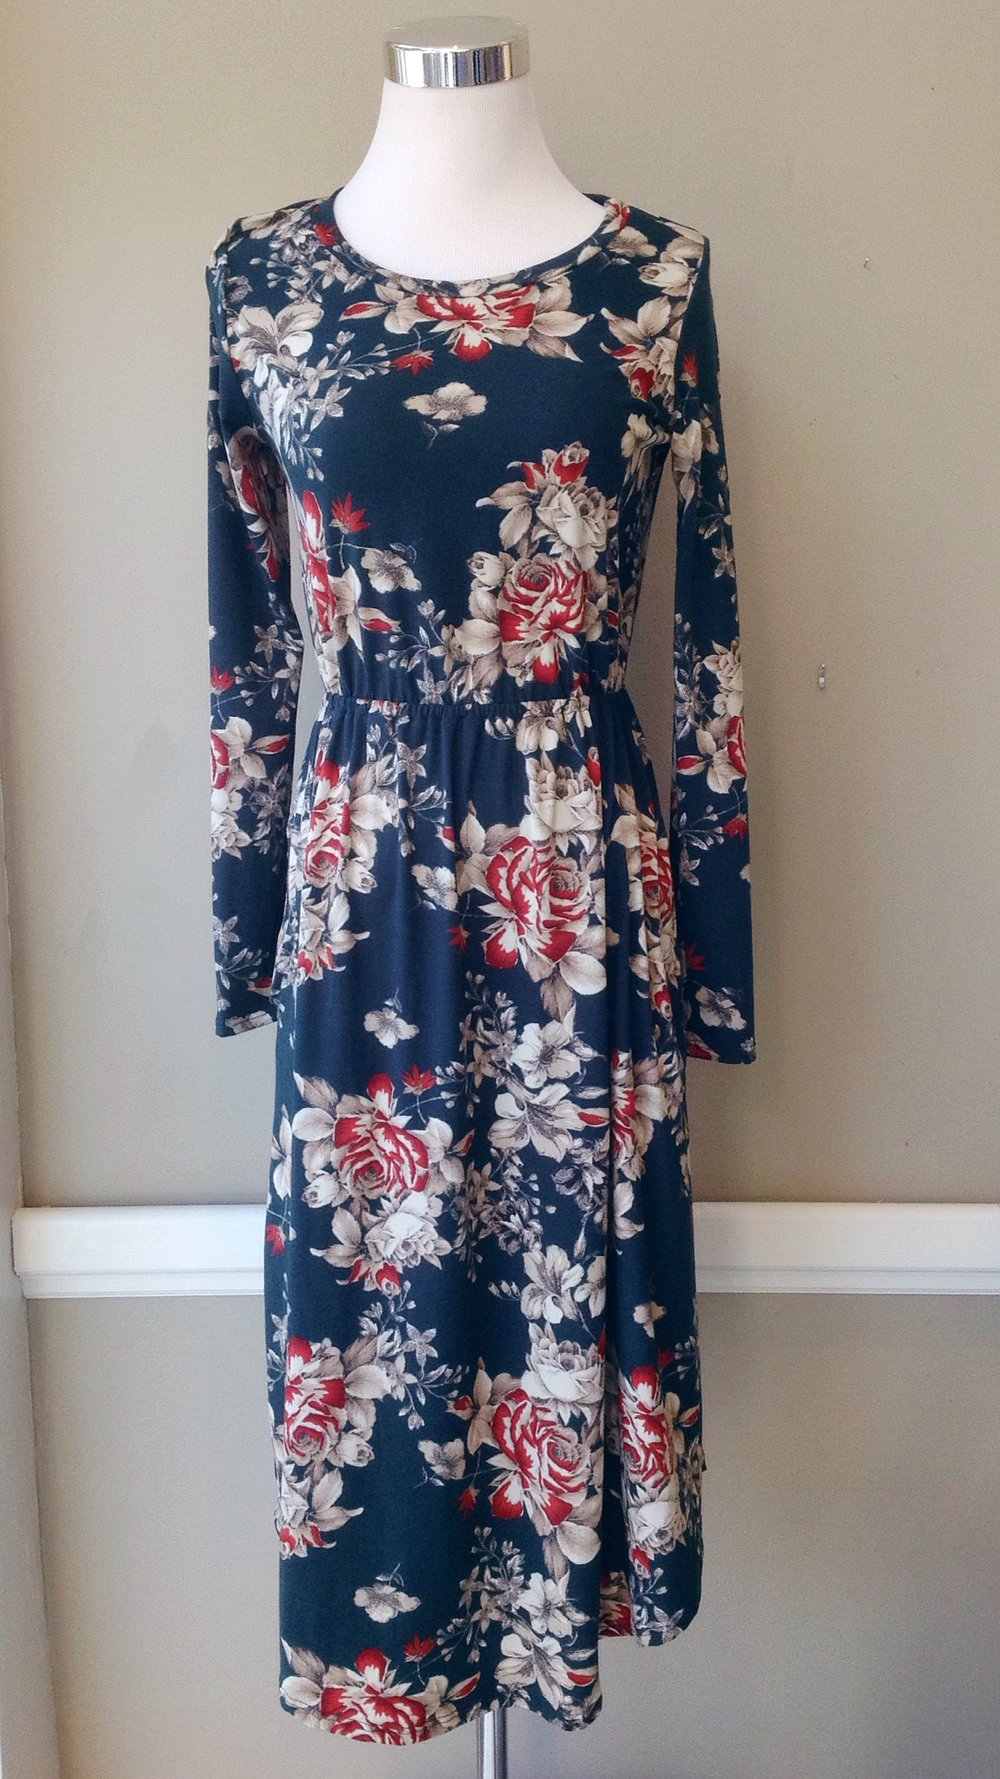 Floral midi dress with gathered waist and side pockets in hunter/taupe/red, $38. Also available in black/taupe/red.